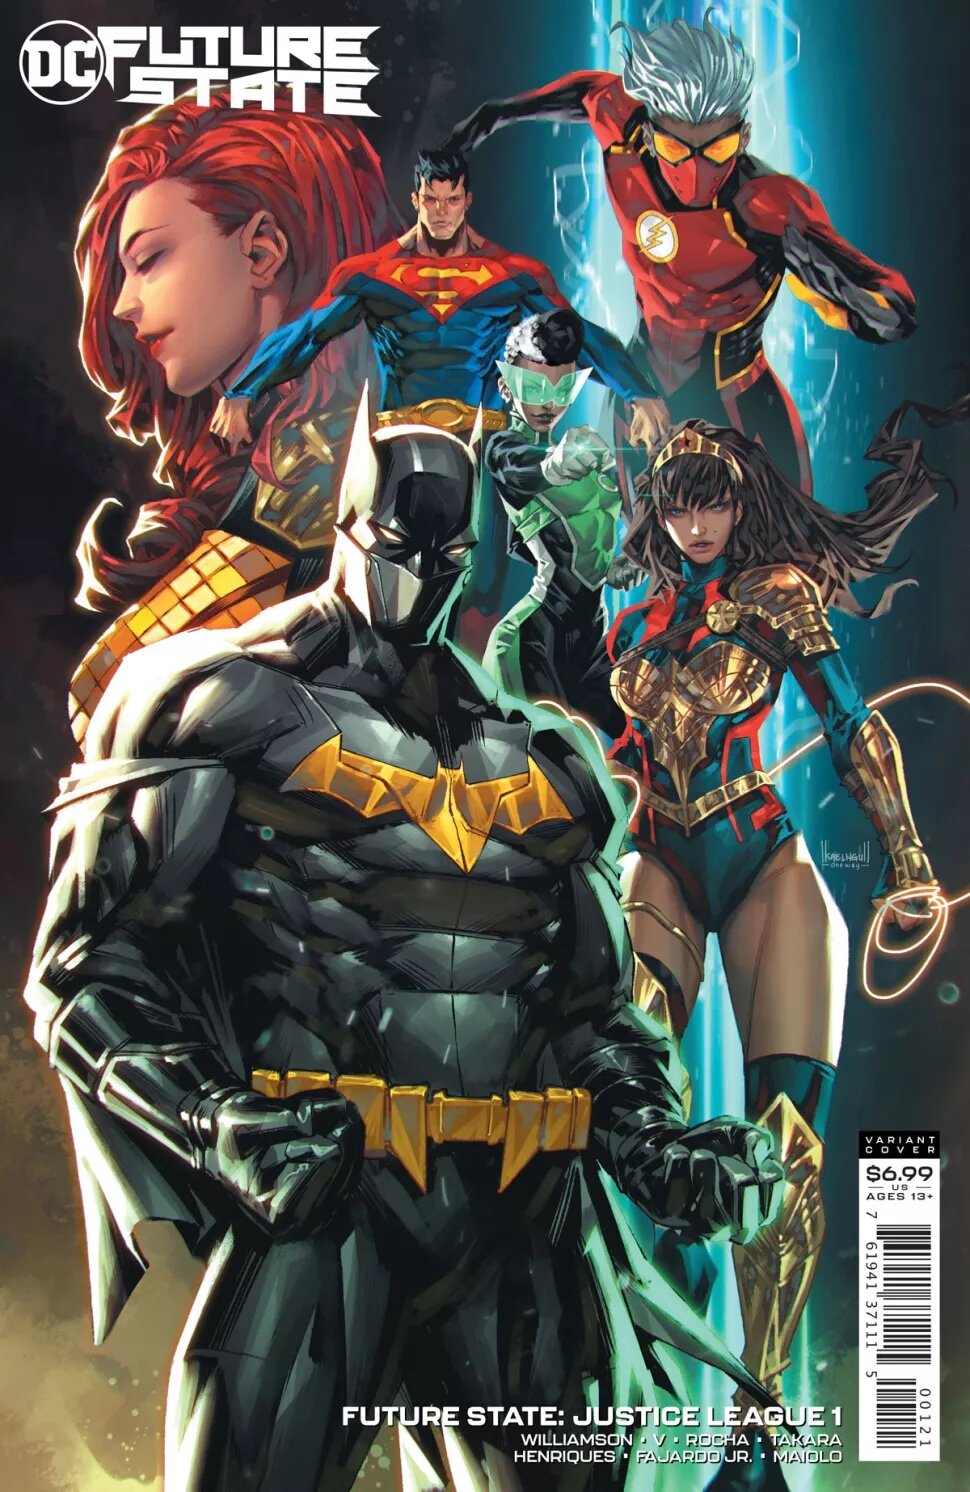 """SYNOPSIS:   """"Together, they protect the future, yet apart, their identities are secret even from one another—but why?"""" the description continues. """"When their greatest adversaries wind up murdered in an abandoned Hall of Justice, all clues point to...the Justice League! The new team's adventures begin here!"""""""